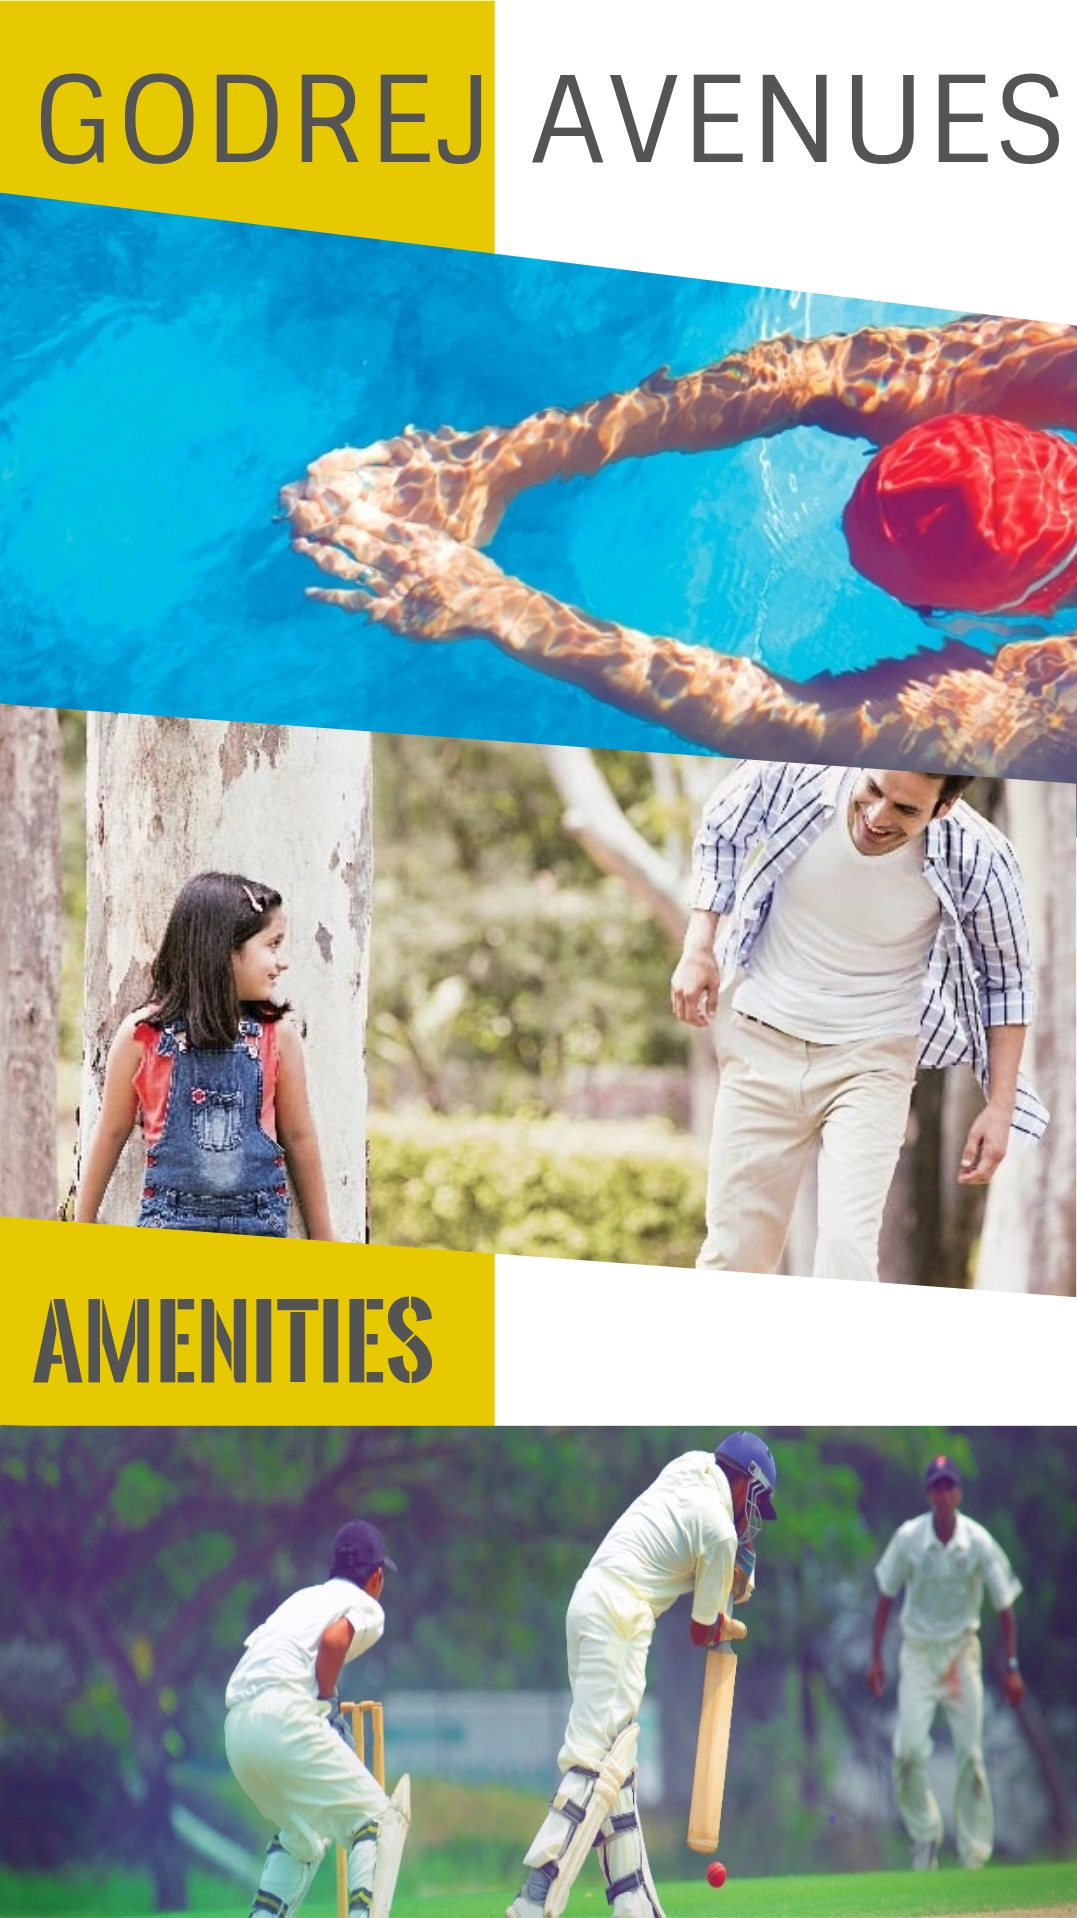 Godrej Avenues | Residential Property in Bangalore